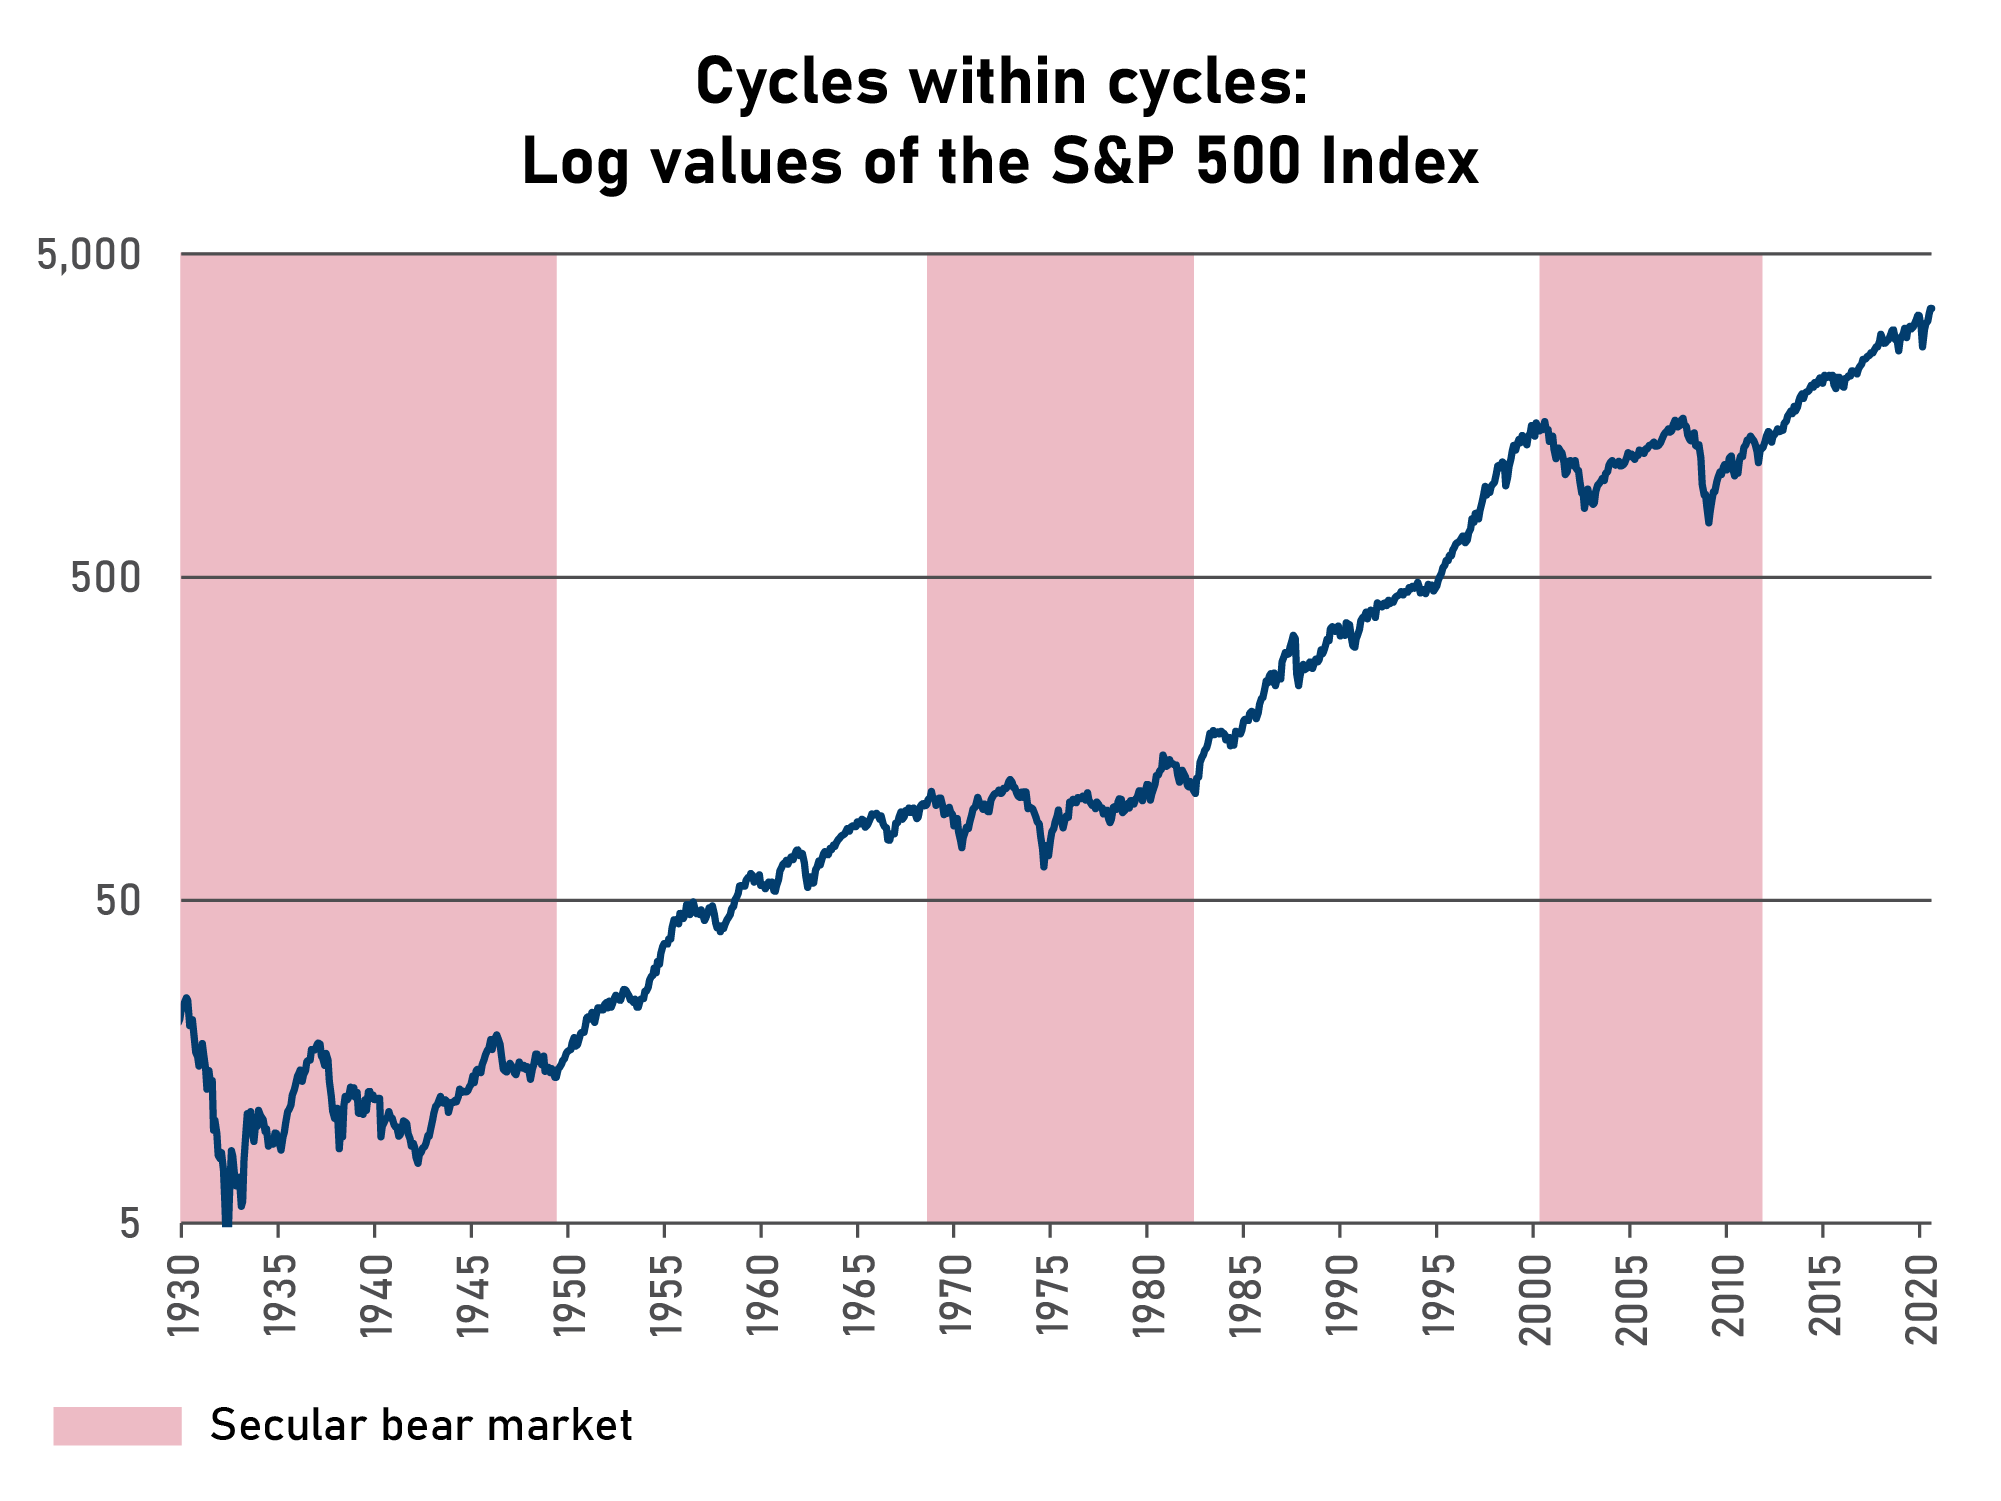 Log values of the S&P 500 Index since 1930 showing long-term secular cycles